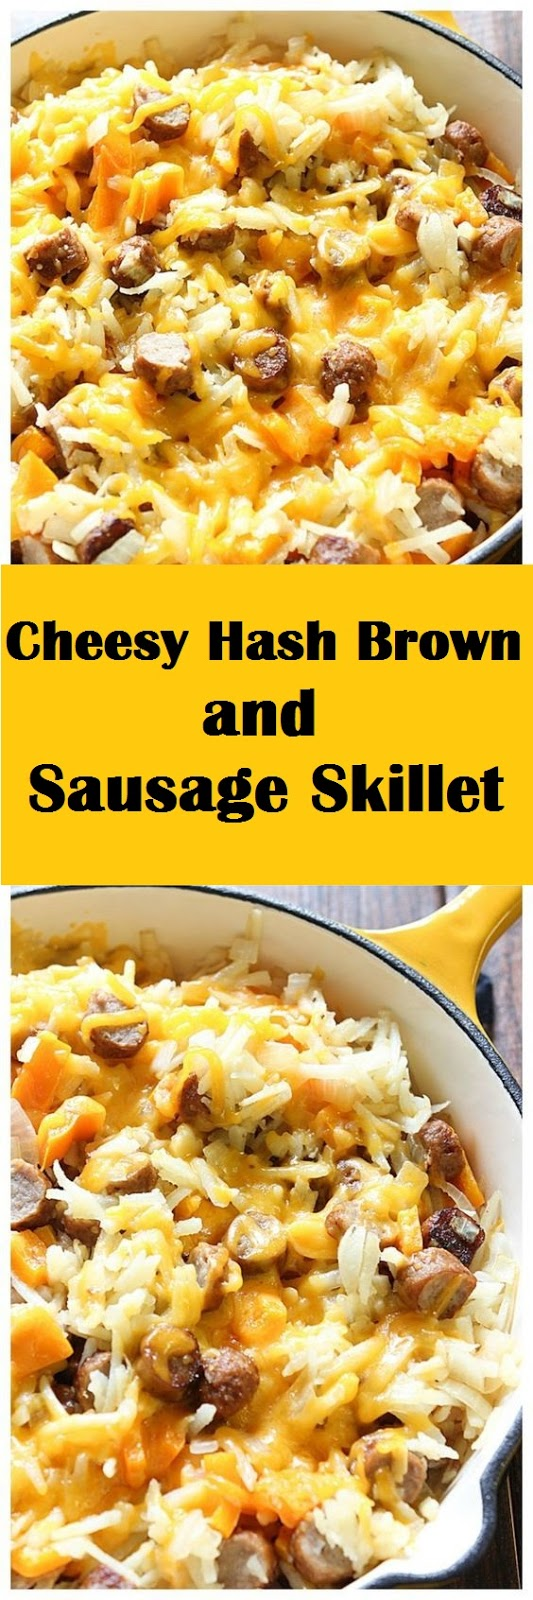 Cheesy Hash Brown and Sausage Skillet